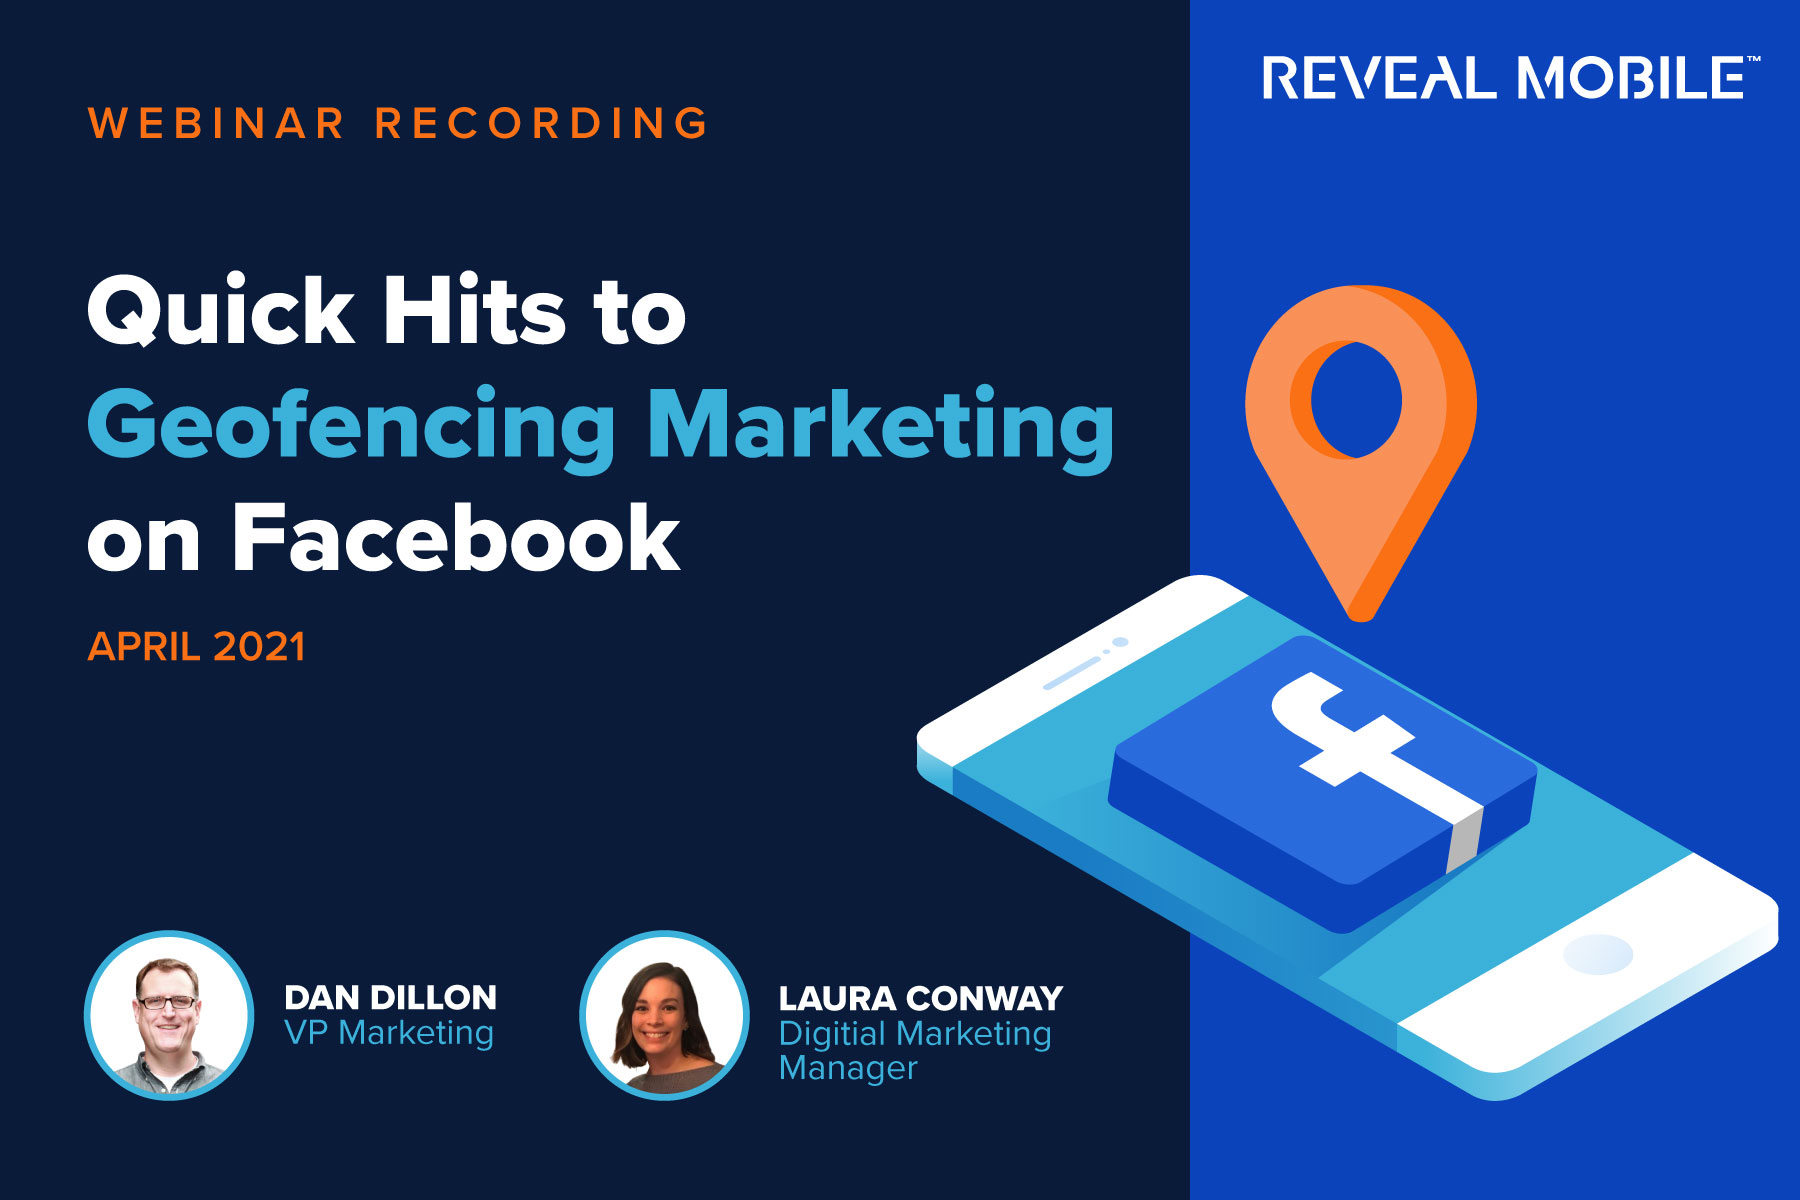 Quick-Hits-to-Geofencing-Marketing-on-Facebook_webinar-recording